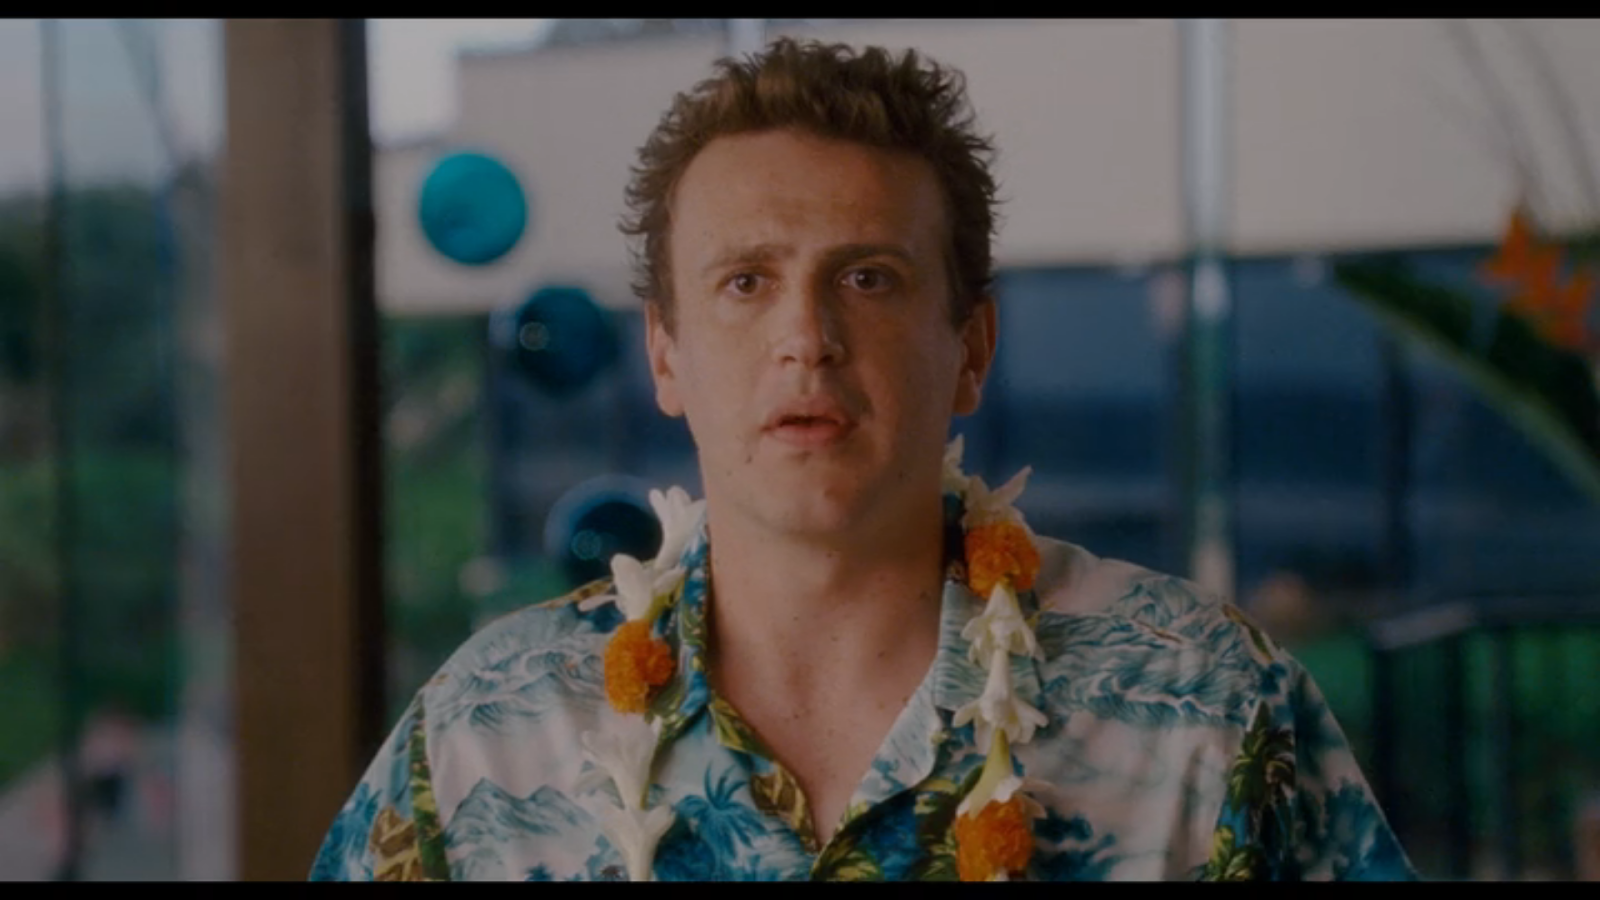 Forgetting sarah marshall oral 6